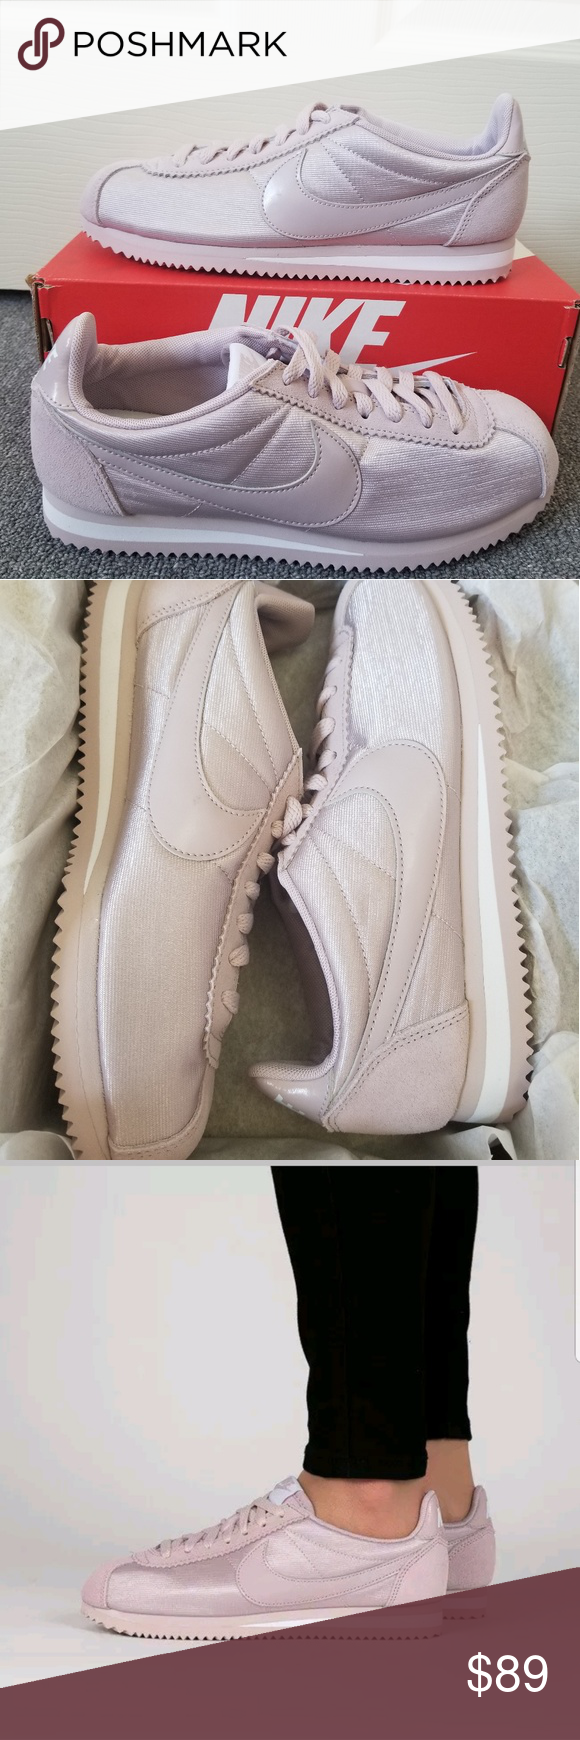 the latest 3f7fd 92ca2 Nike Classic Cortez Nylon Particle Rose Pink Shoes New in Box Women s Nike  Classic Cortez Nylon